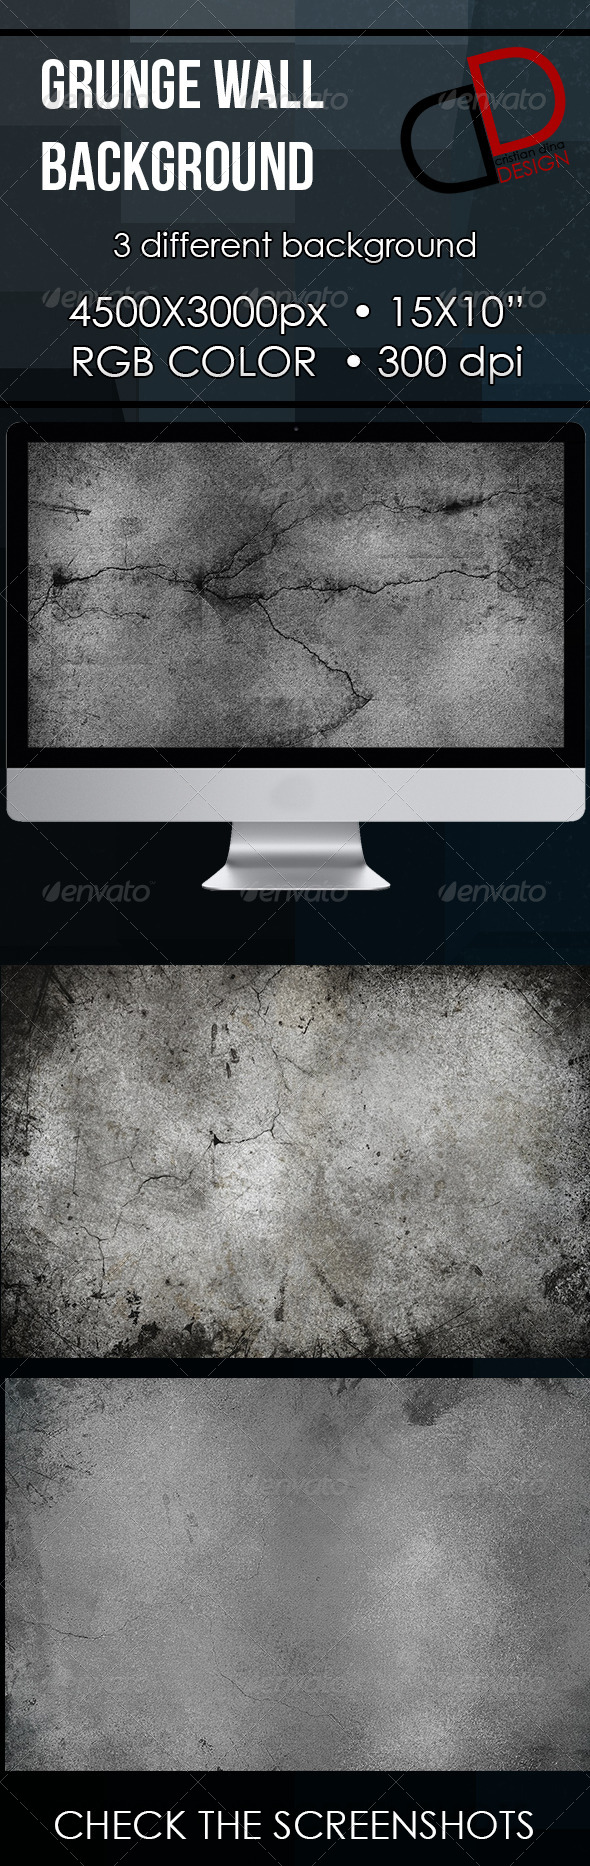 Grunge Wall Background - Backgrounds Graphics